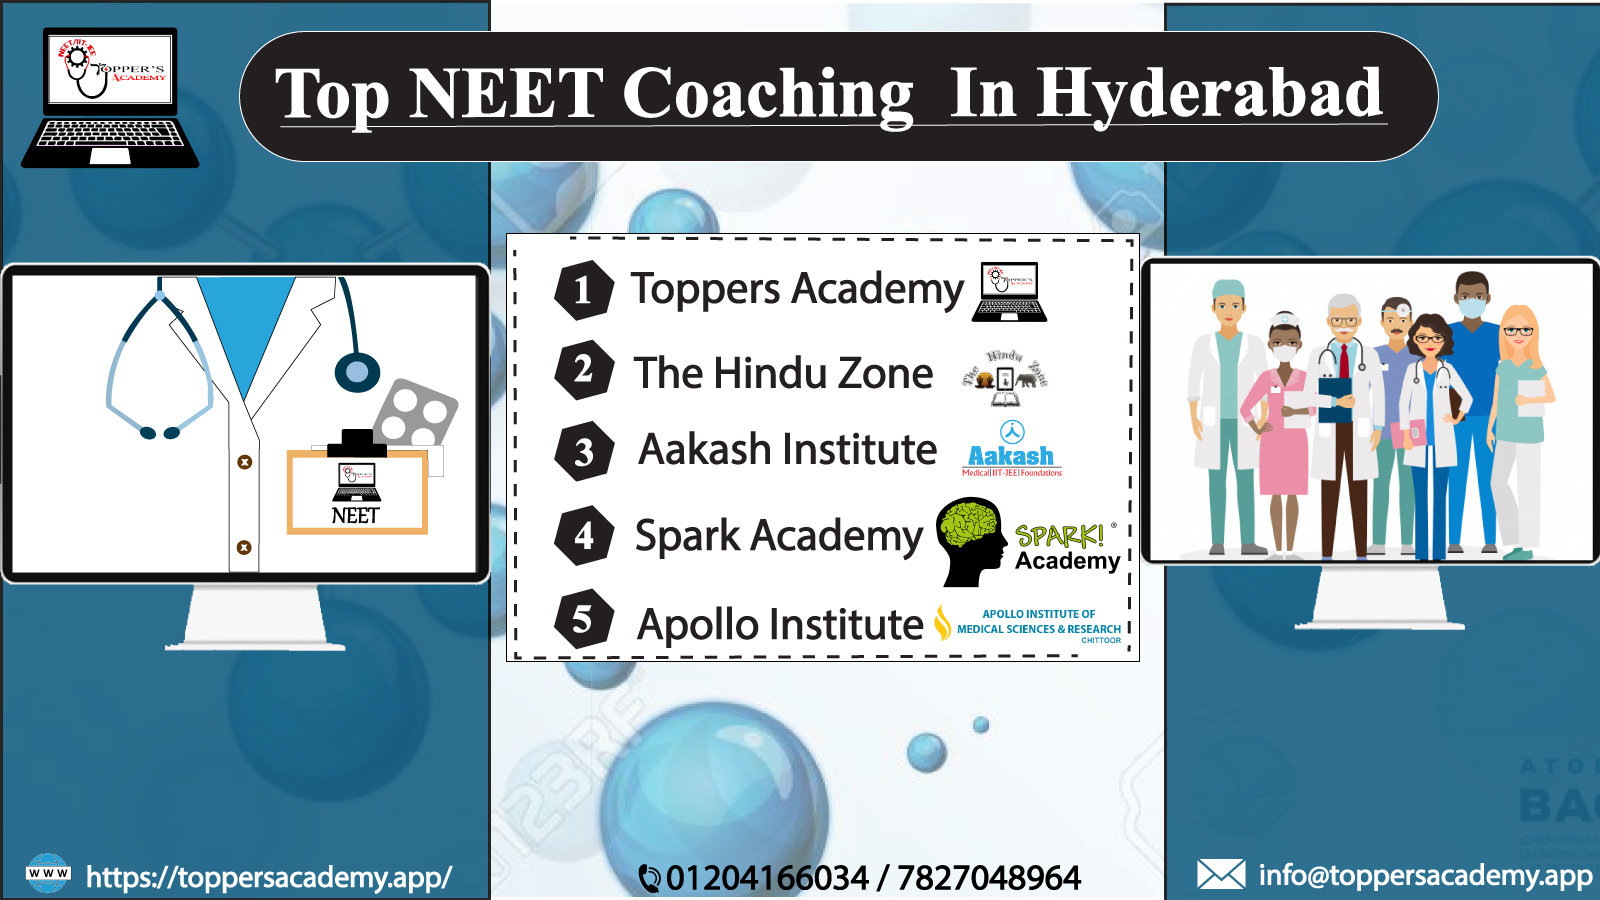 Best 10 NEET Coaching Classes For Medical Exams In Hyderabad